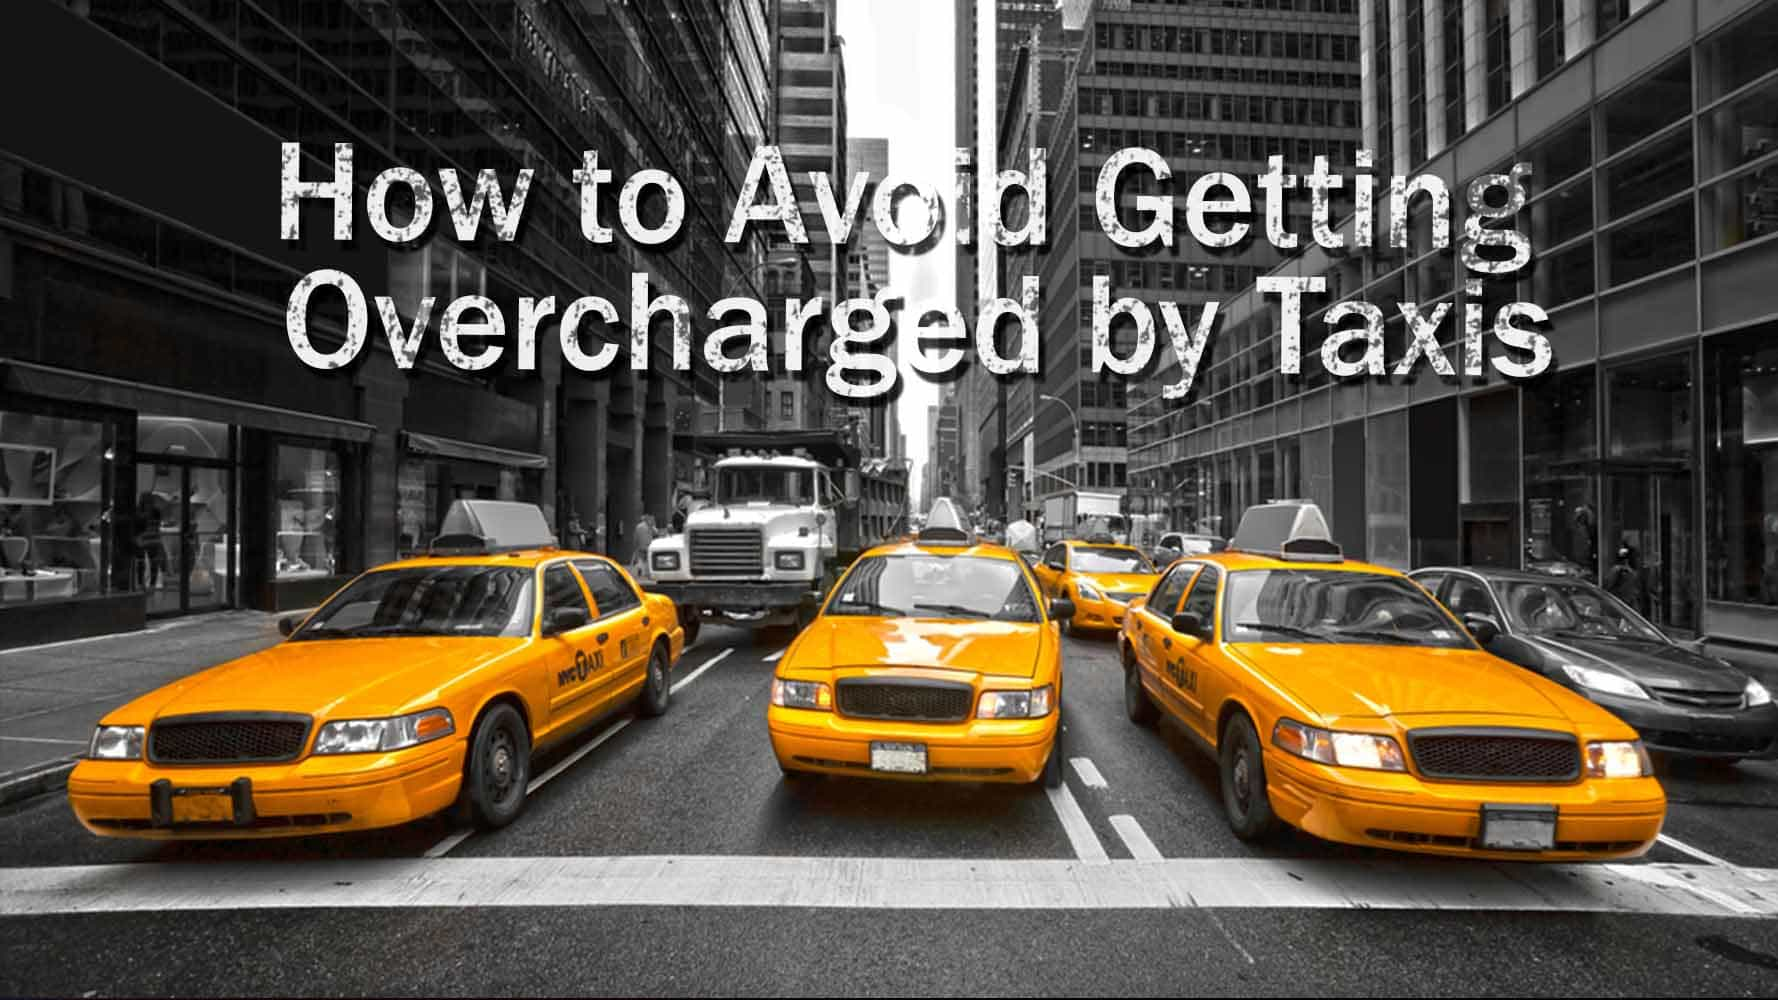 How To Avoid Getting Overcharged By Taxis